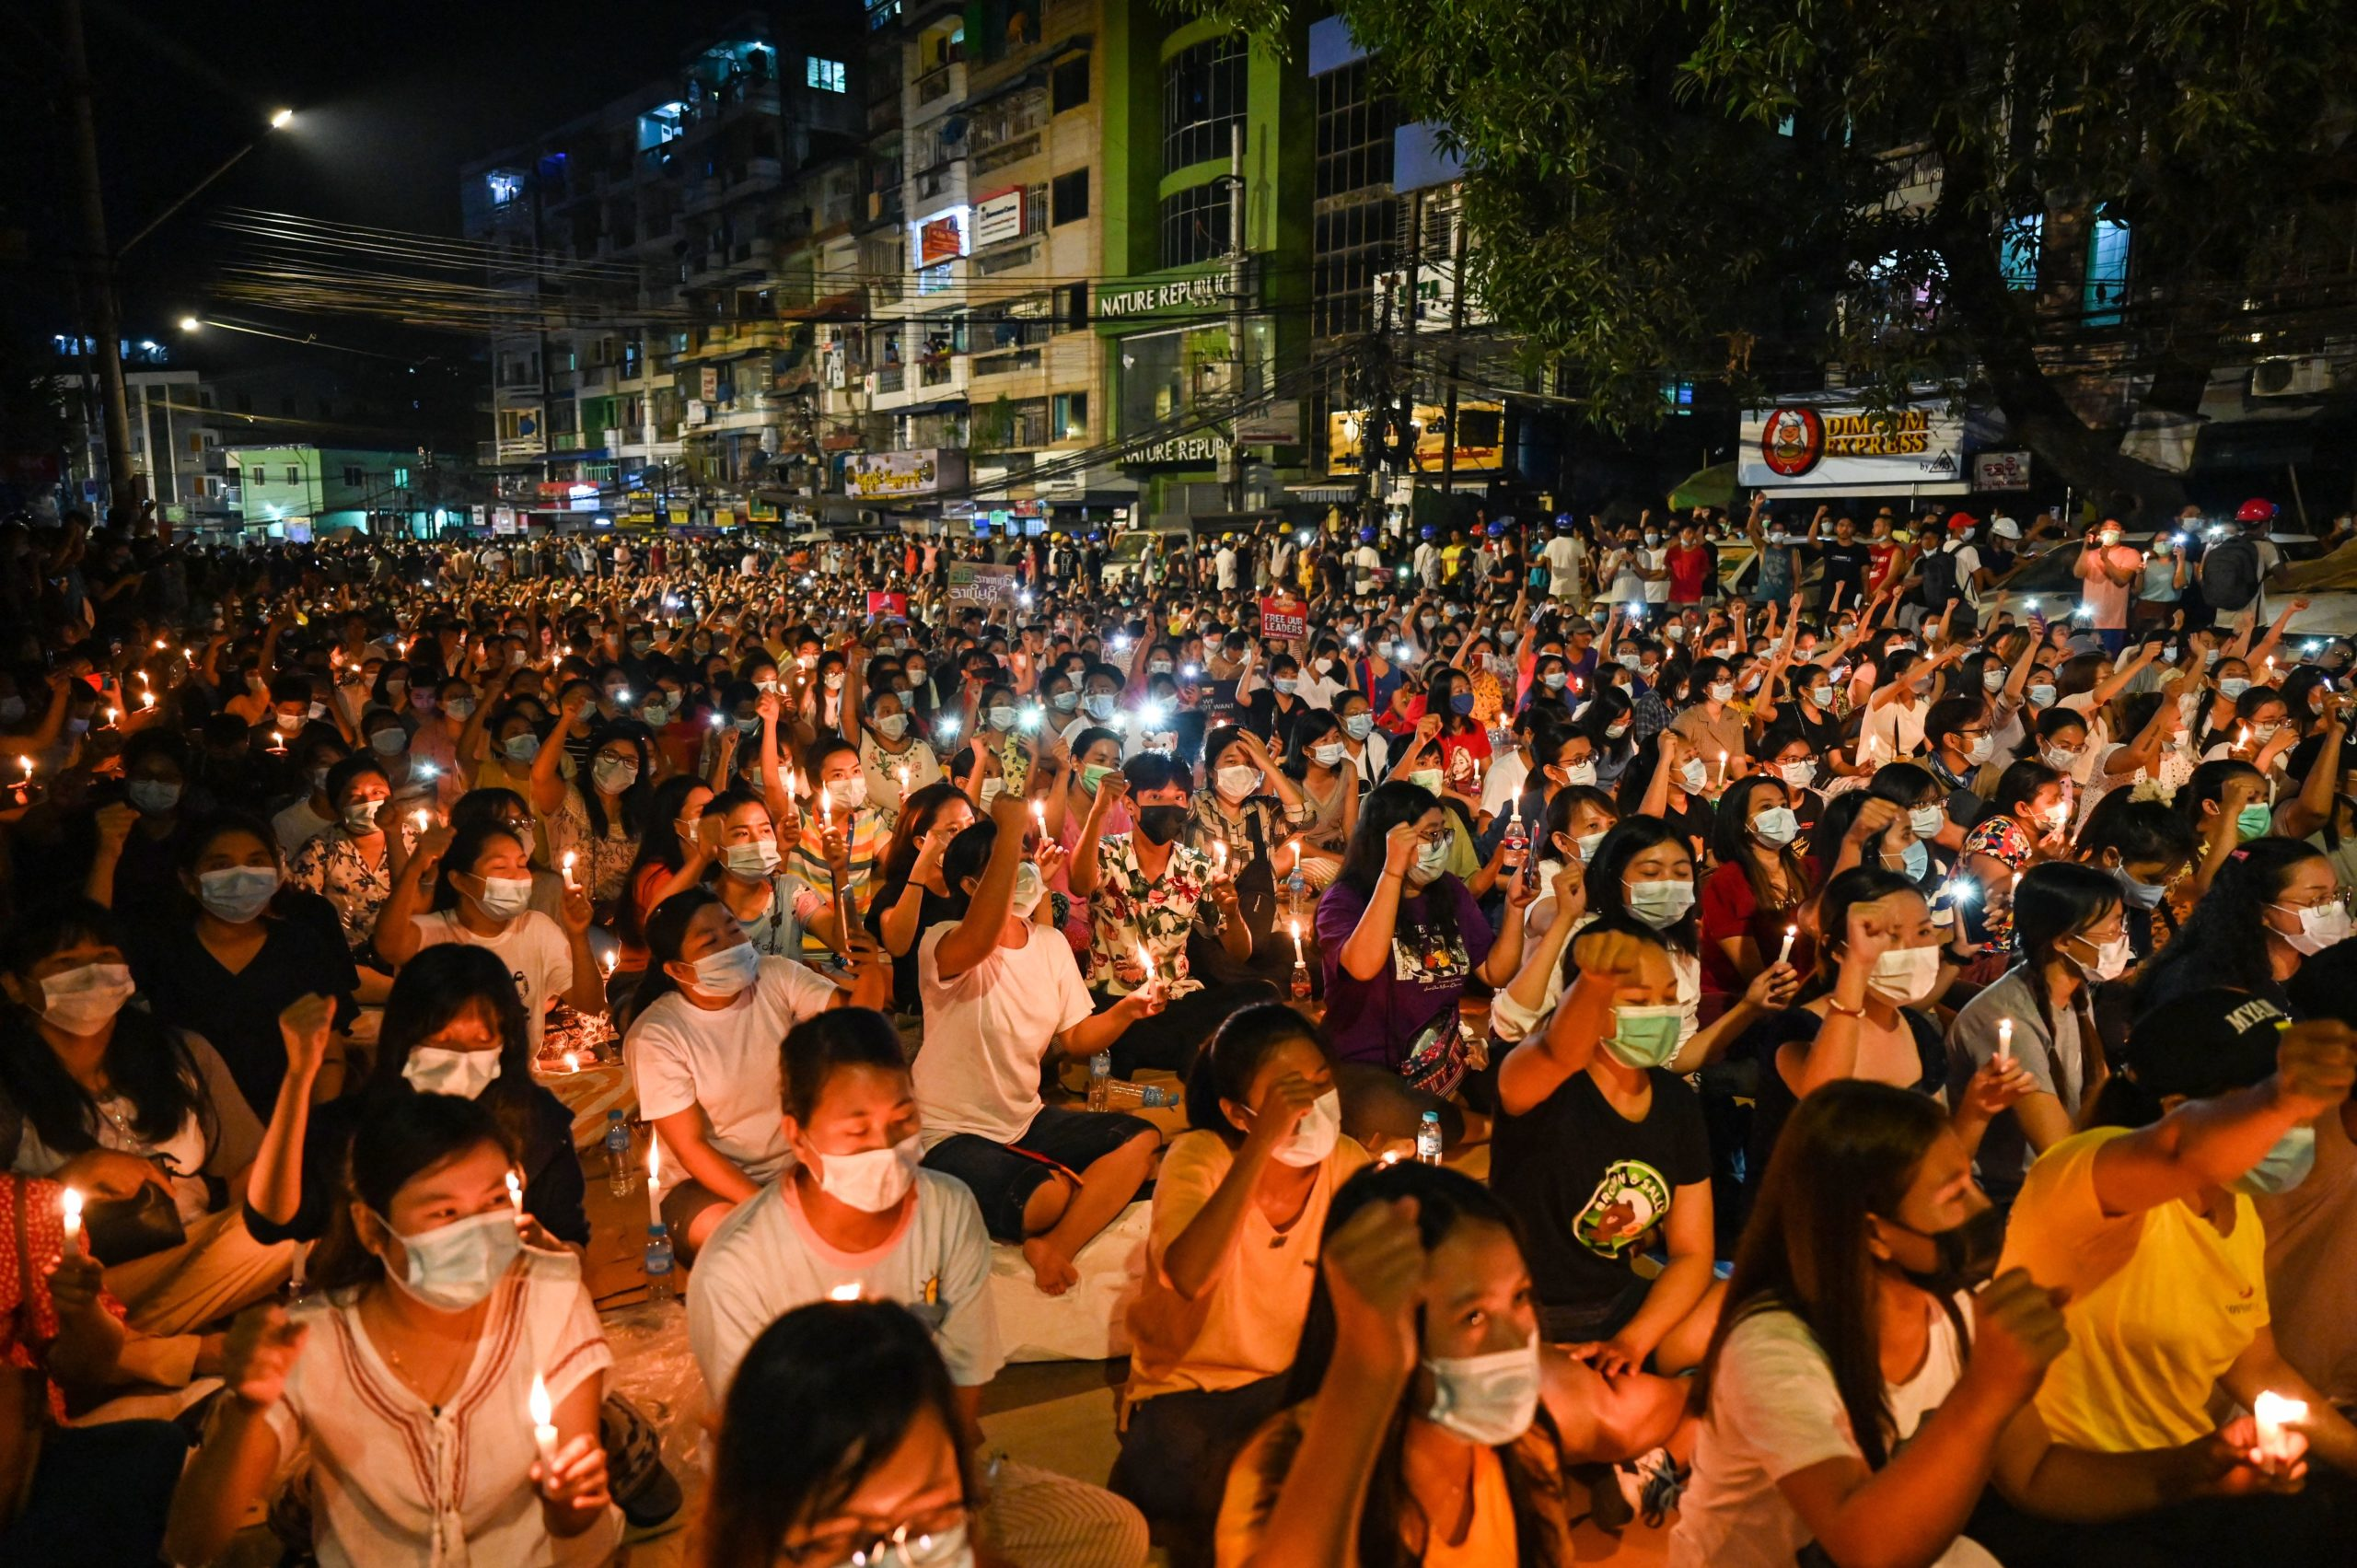 Protesters gesture during a candlelight vigil to honour those who have died during demonstrations against the military coup in Yangon on March 13, 2021. (Photo by STR / AFP) (Photo by STR/AFP via Getty Images)